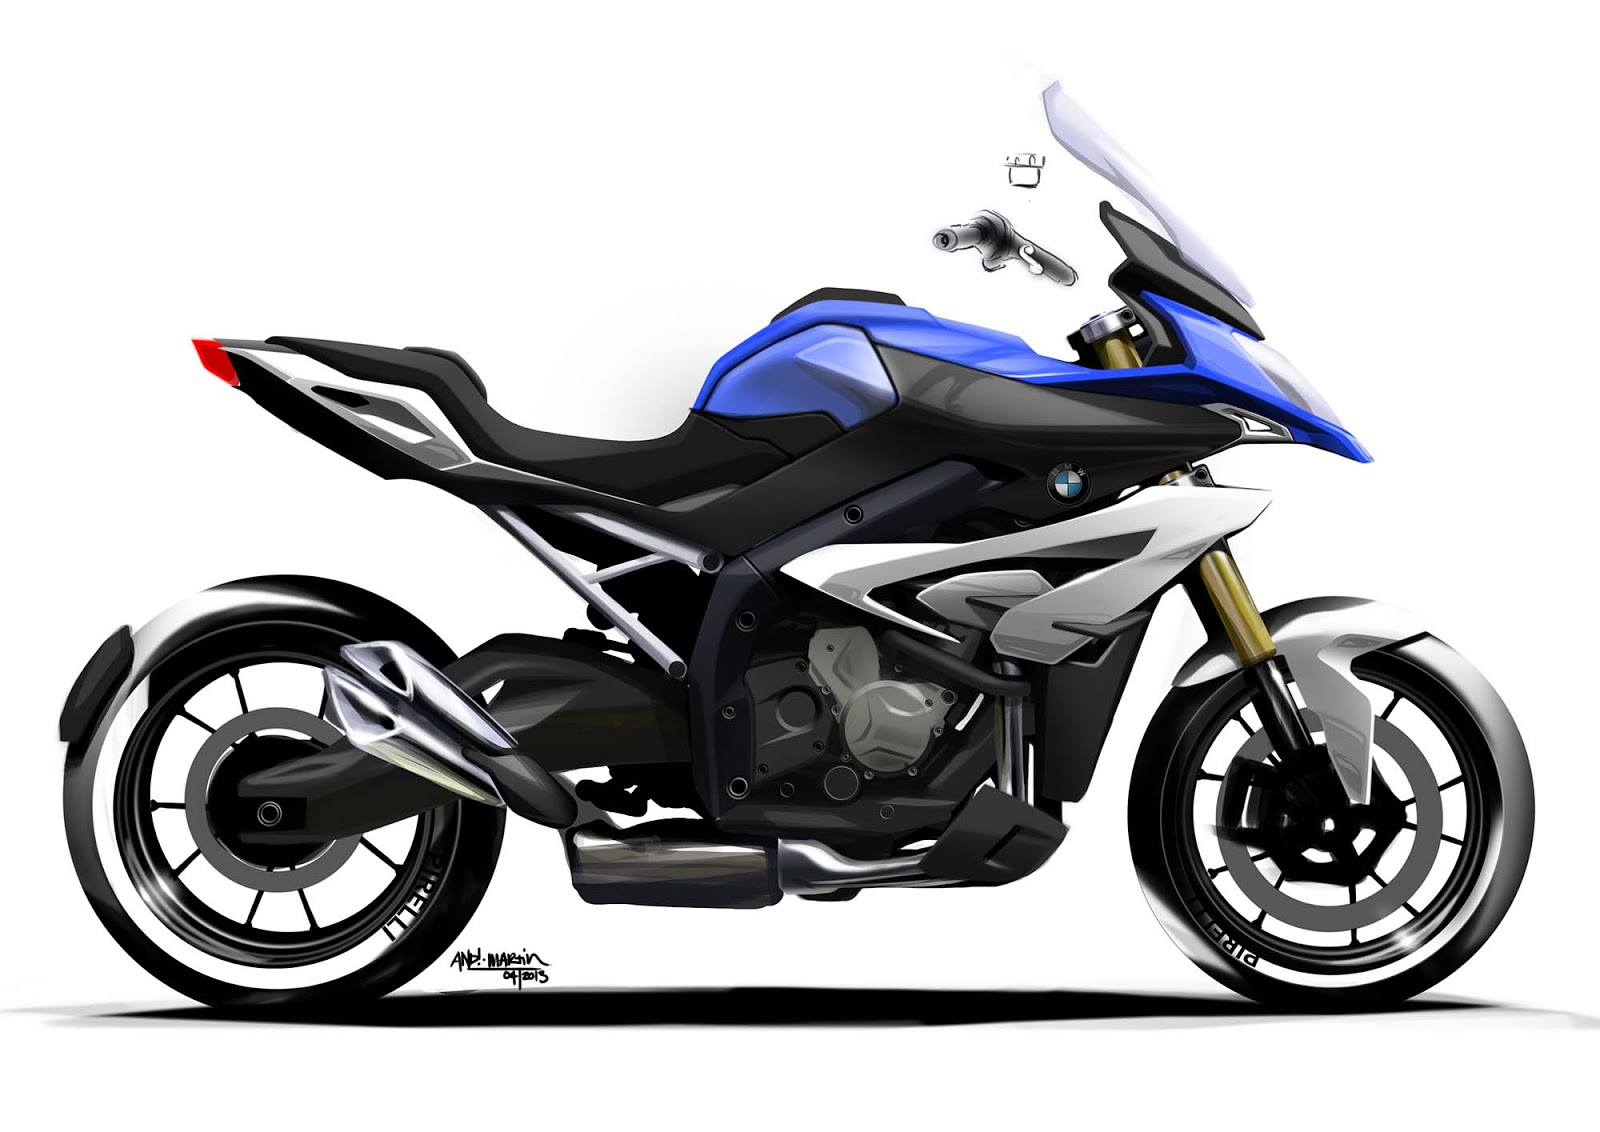 bmw s 1000 xr 2015 with 160 horses power. Black Bedroom Furniture Sets. Home Design Ideas